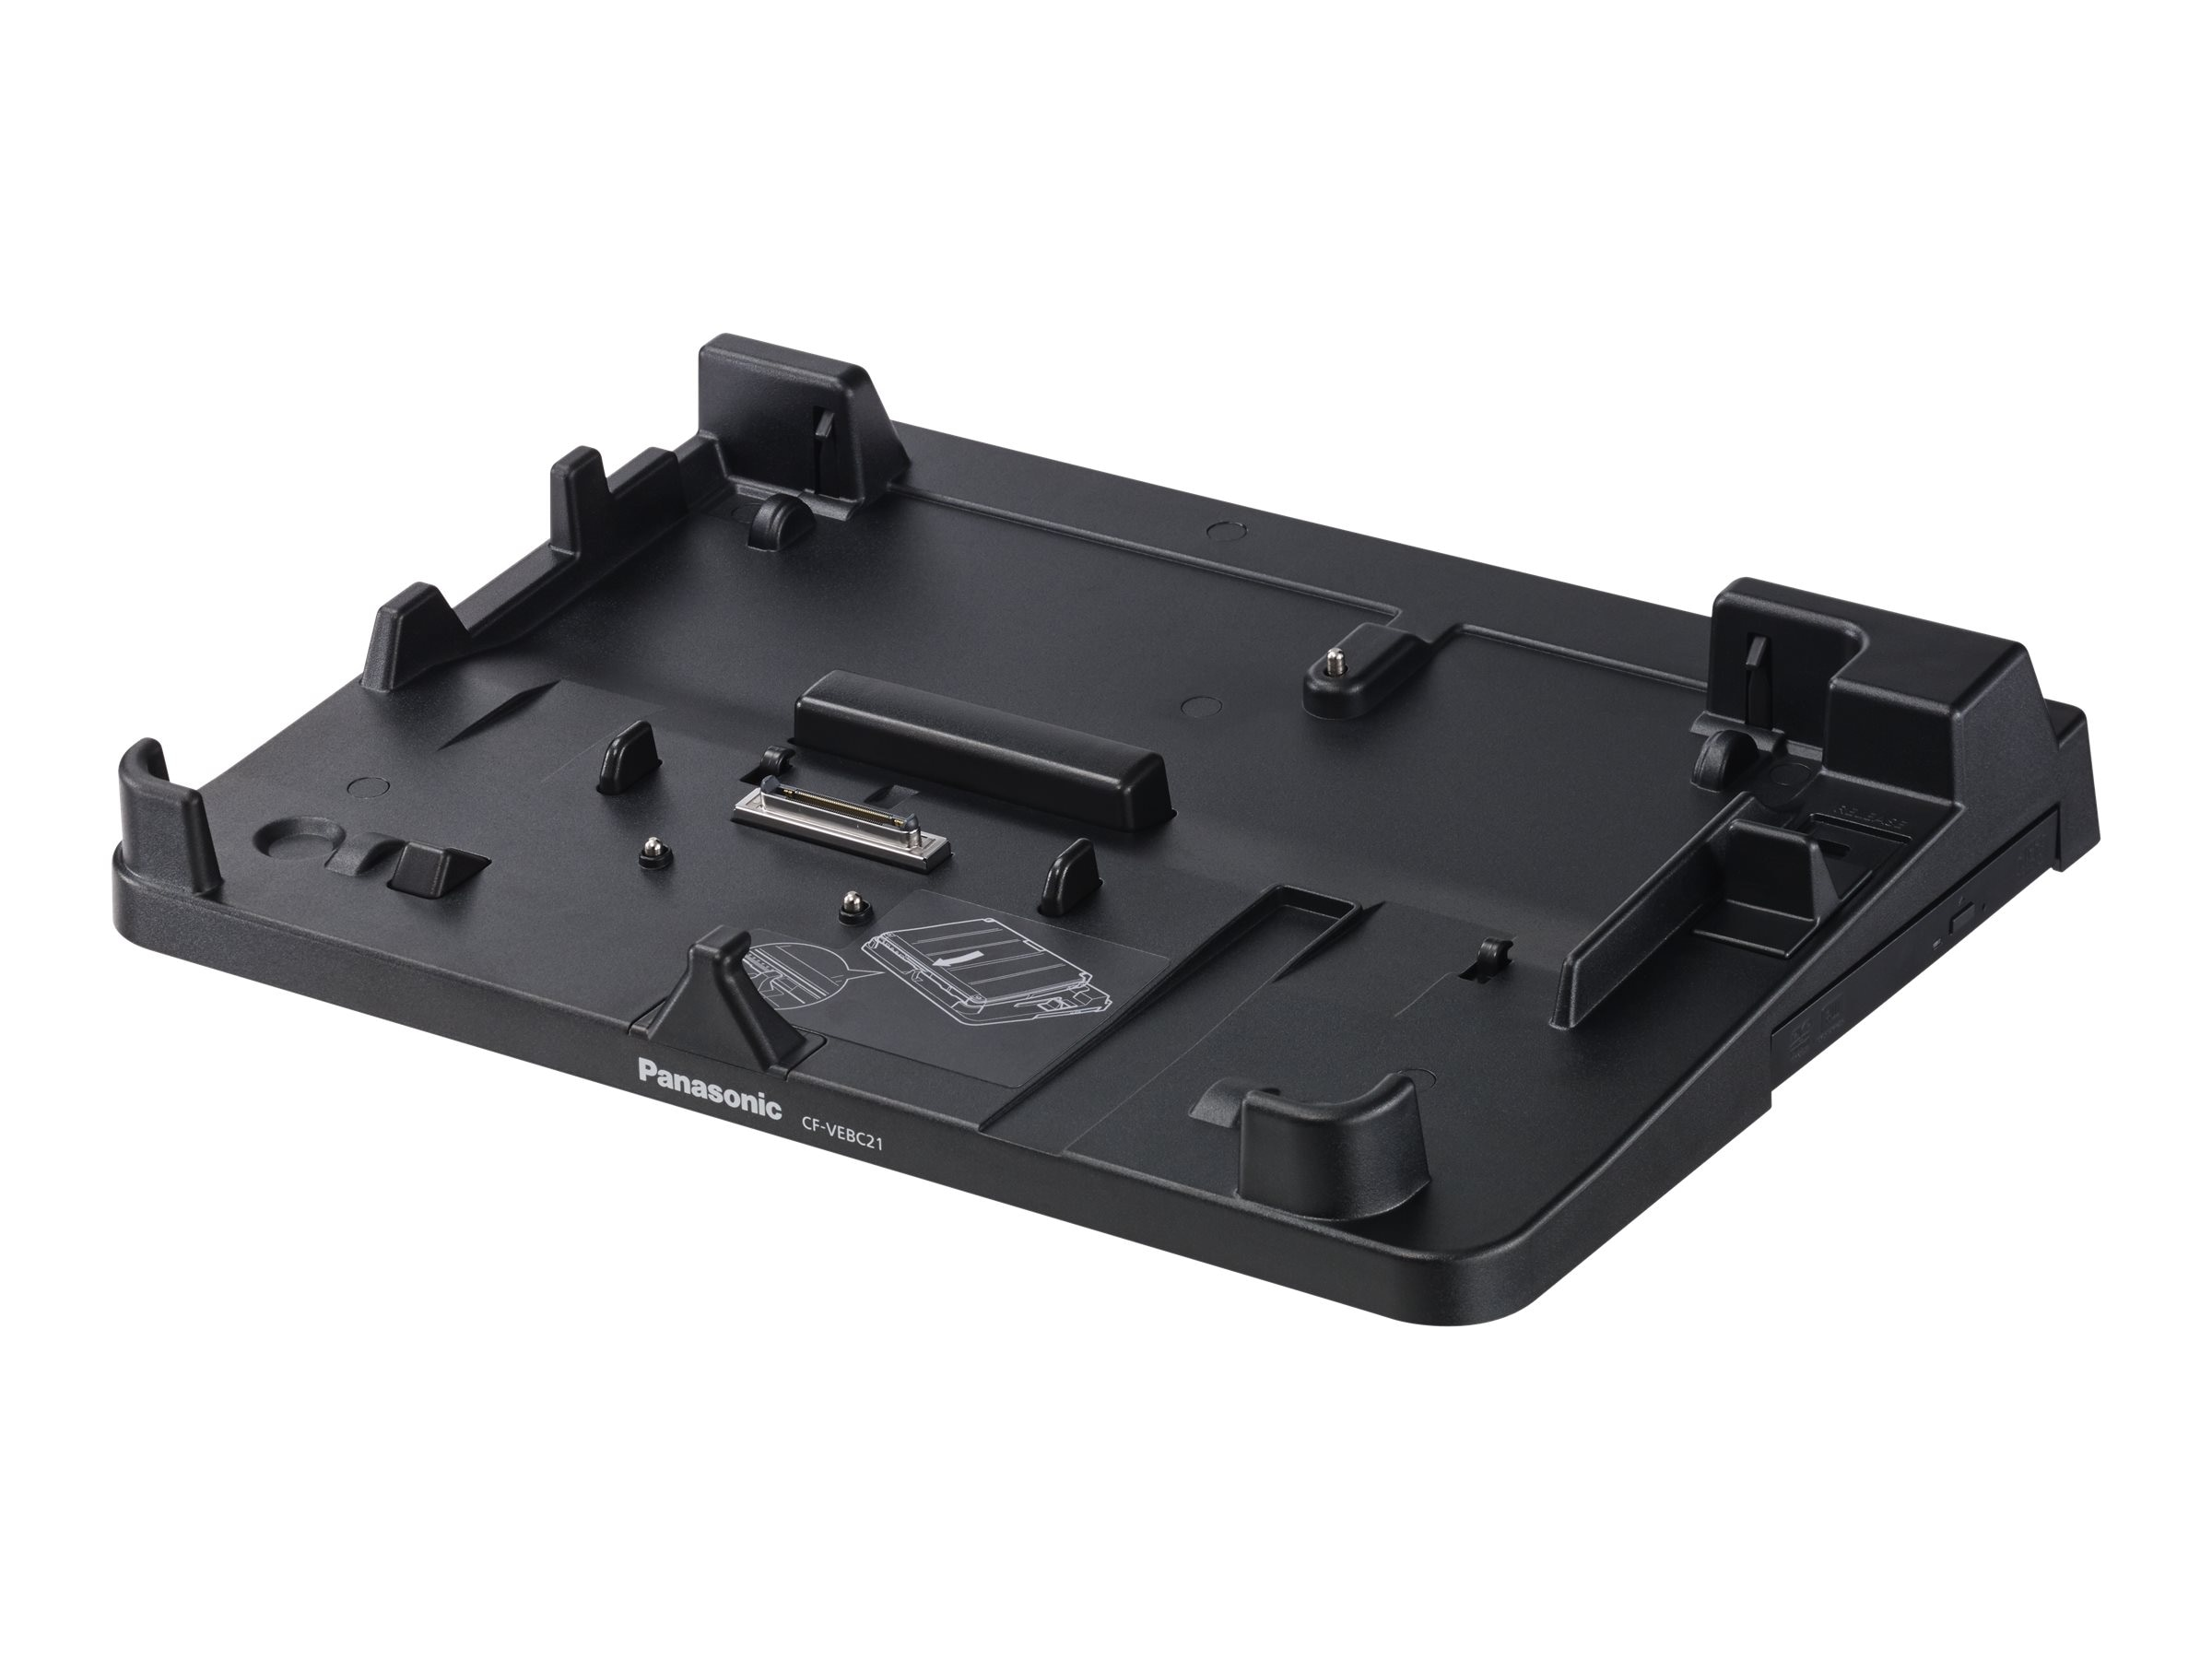 Panasonic Port Replicator for Toughbook C2, CF-VEBC21U